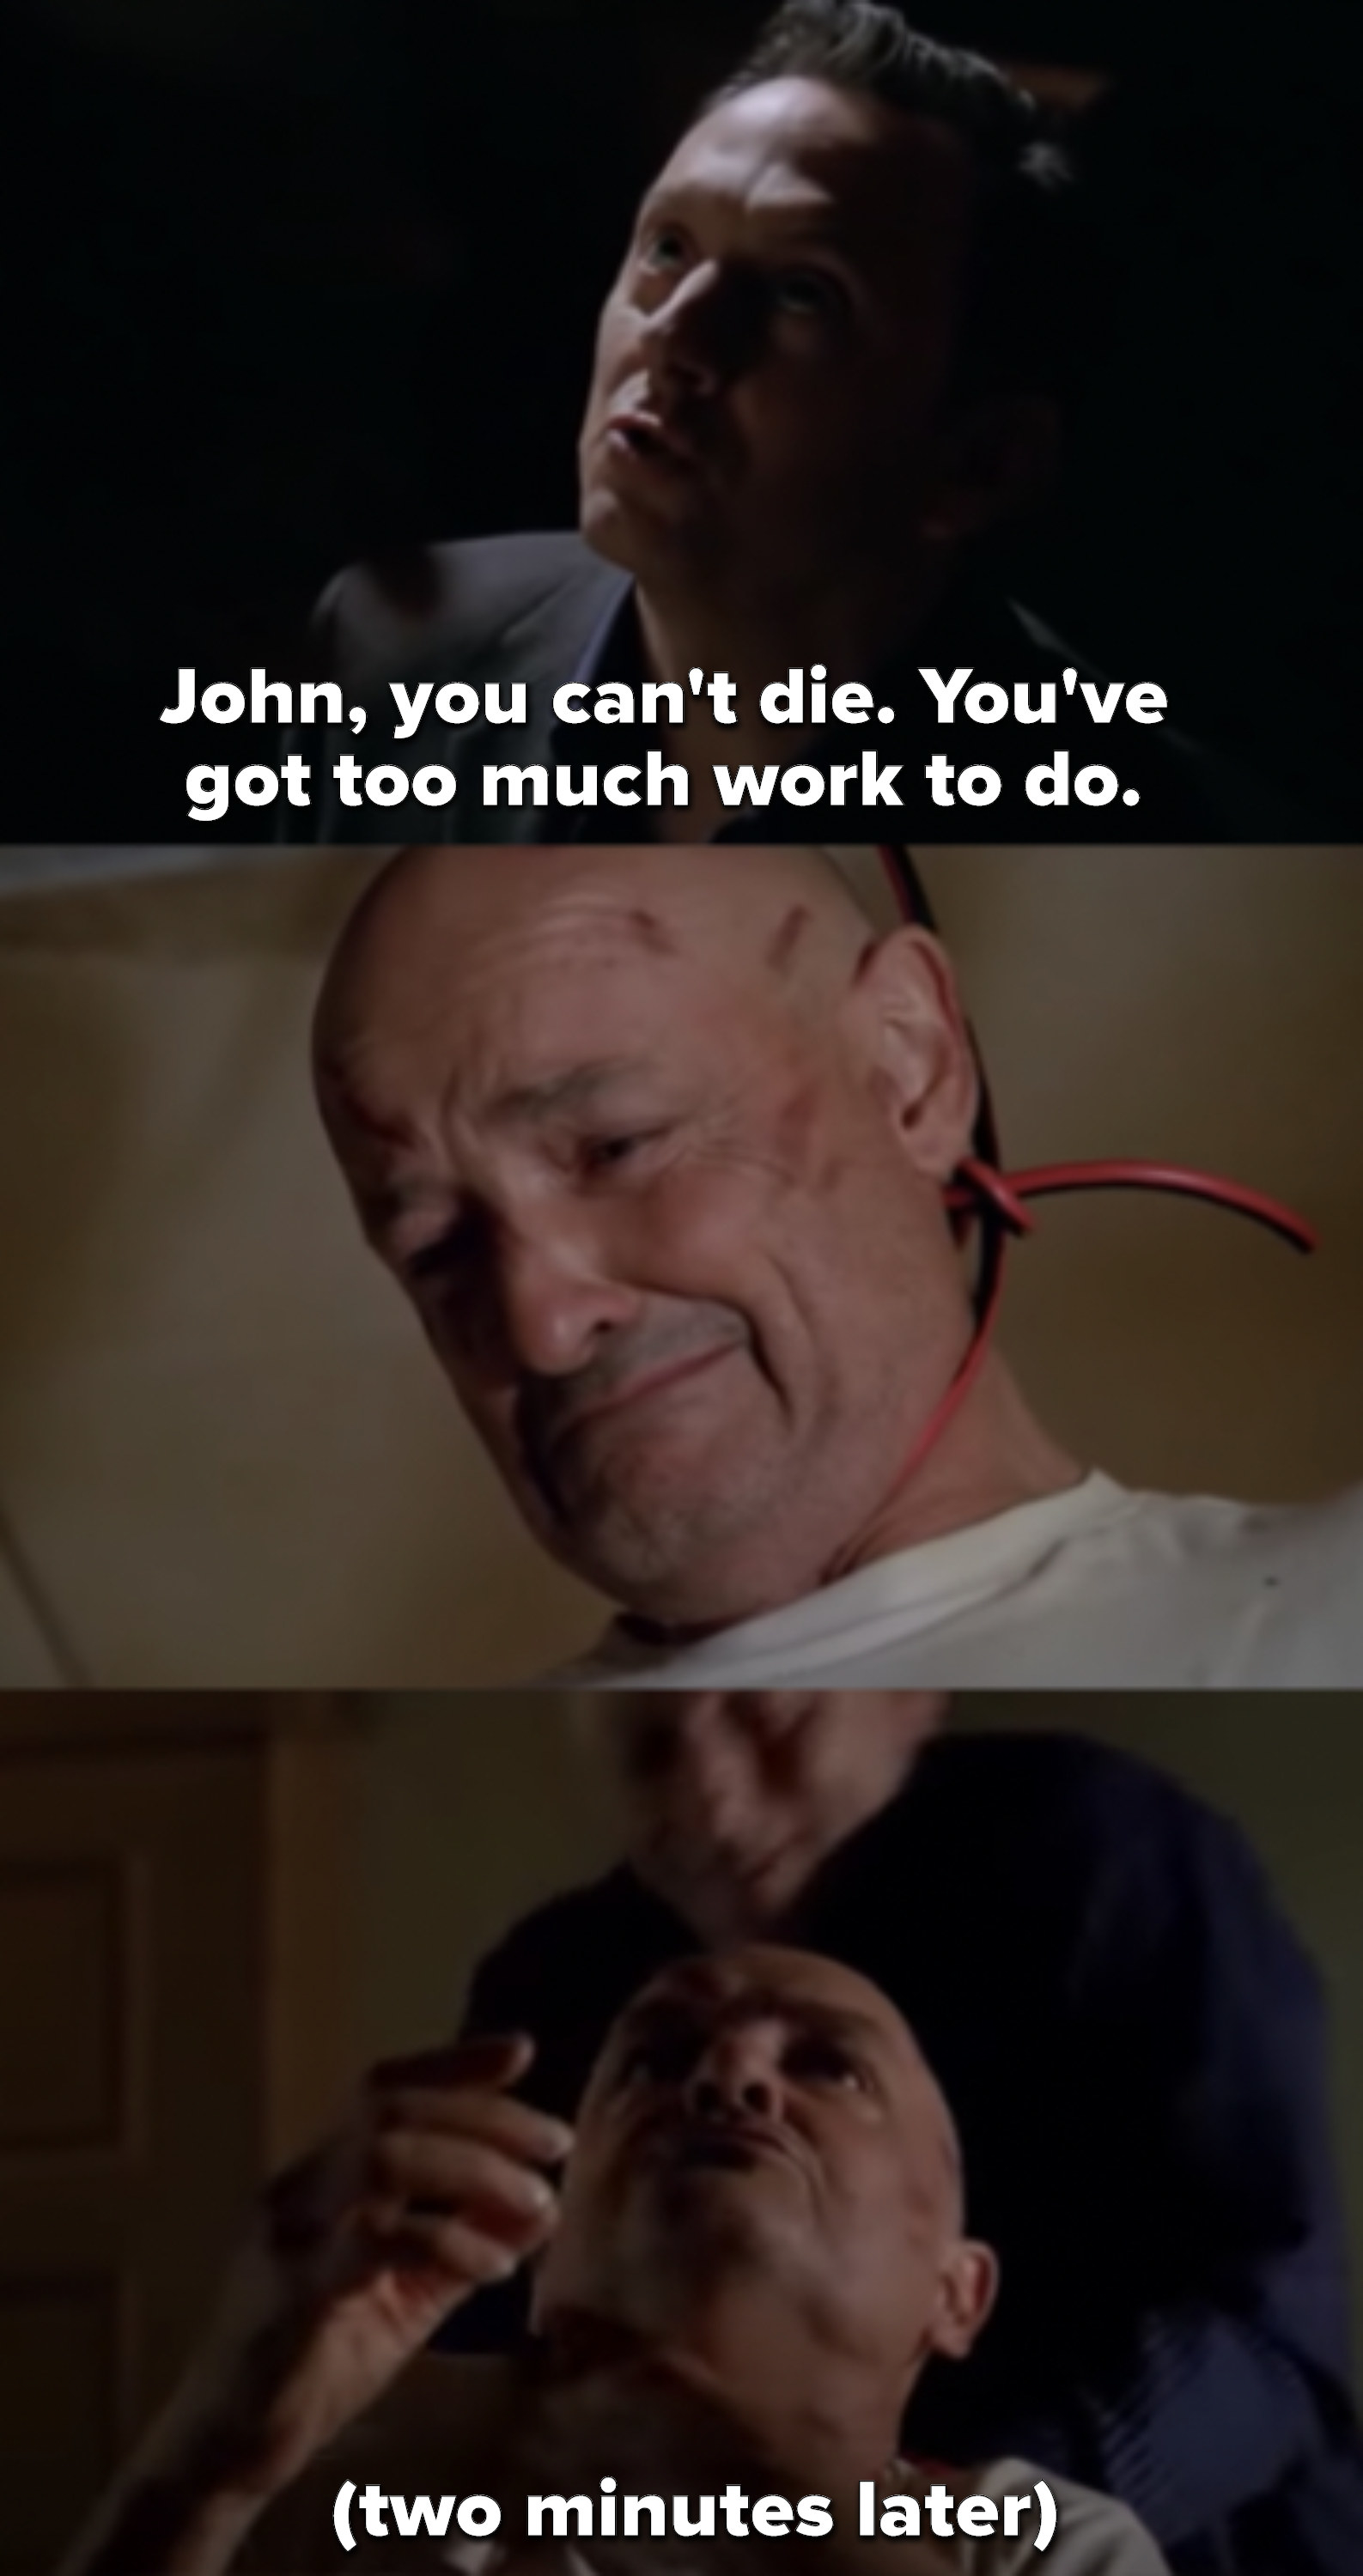 Ben says John can't die because he has too much work to do, and John takes the cord of his neck. Ben then kills him with it